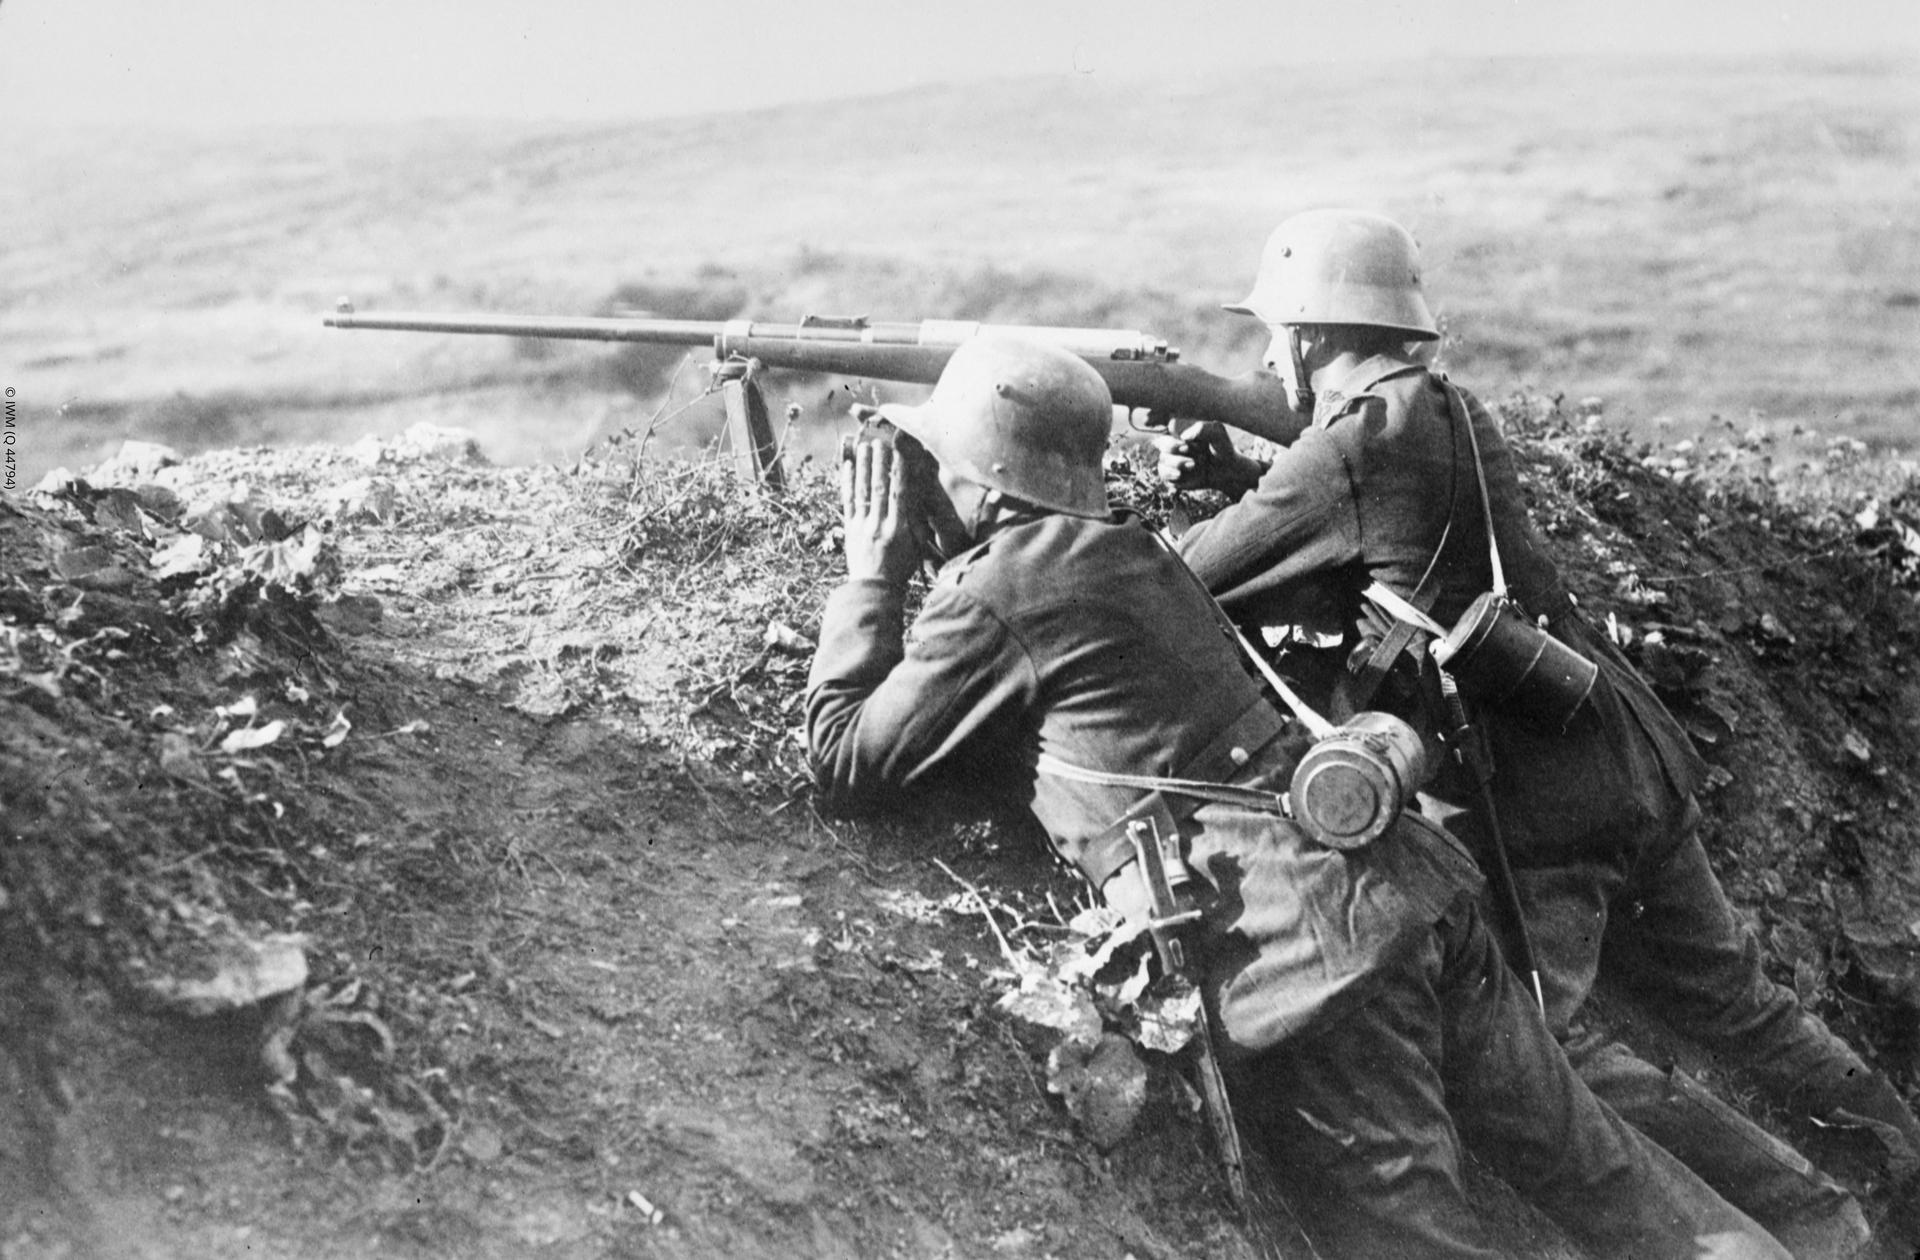 Photograph showing a German T-Gewehr anti tank gun in action during the retreat from Verdun at Hill 510, France 1918.